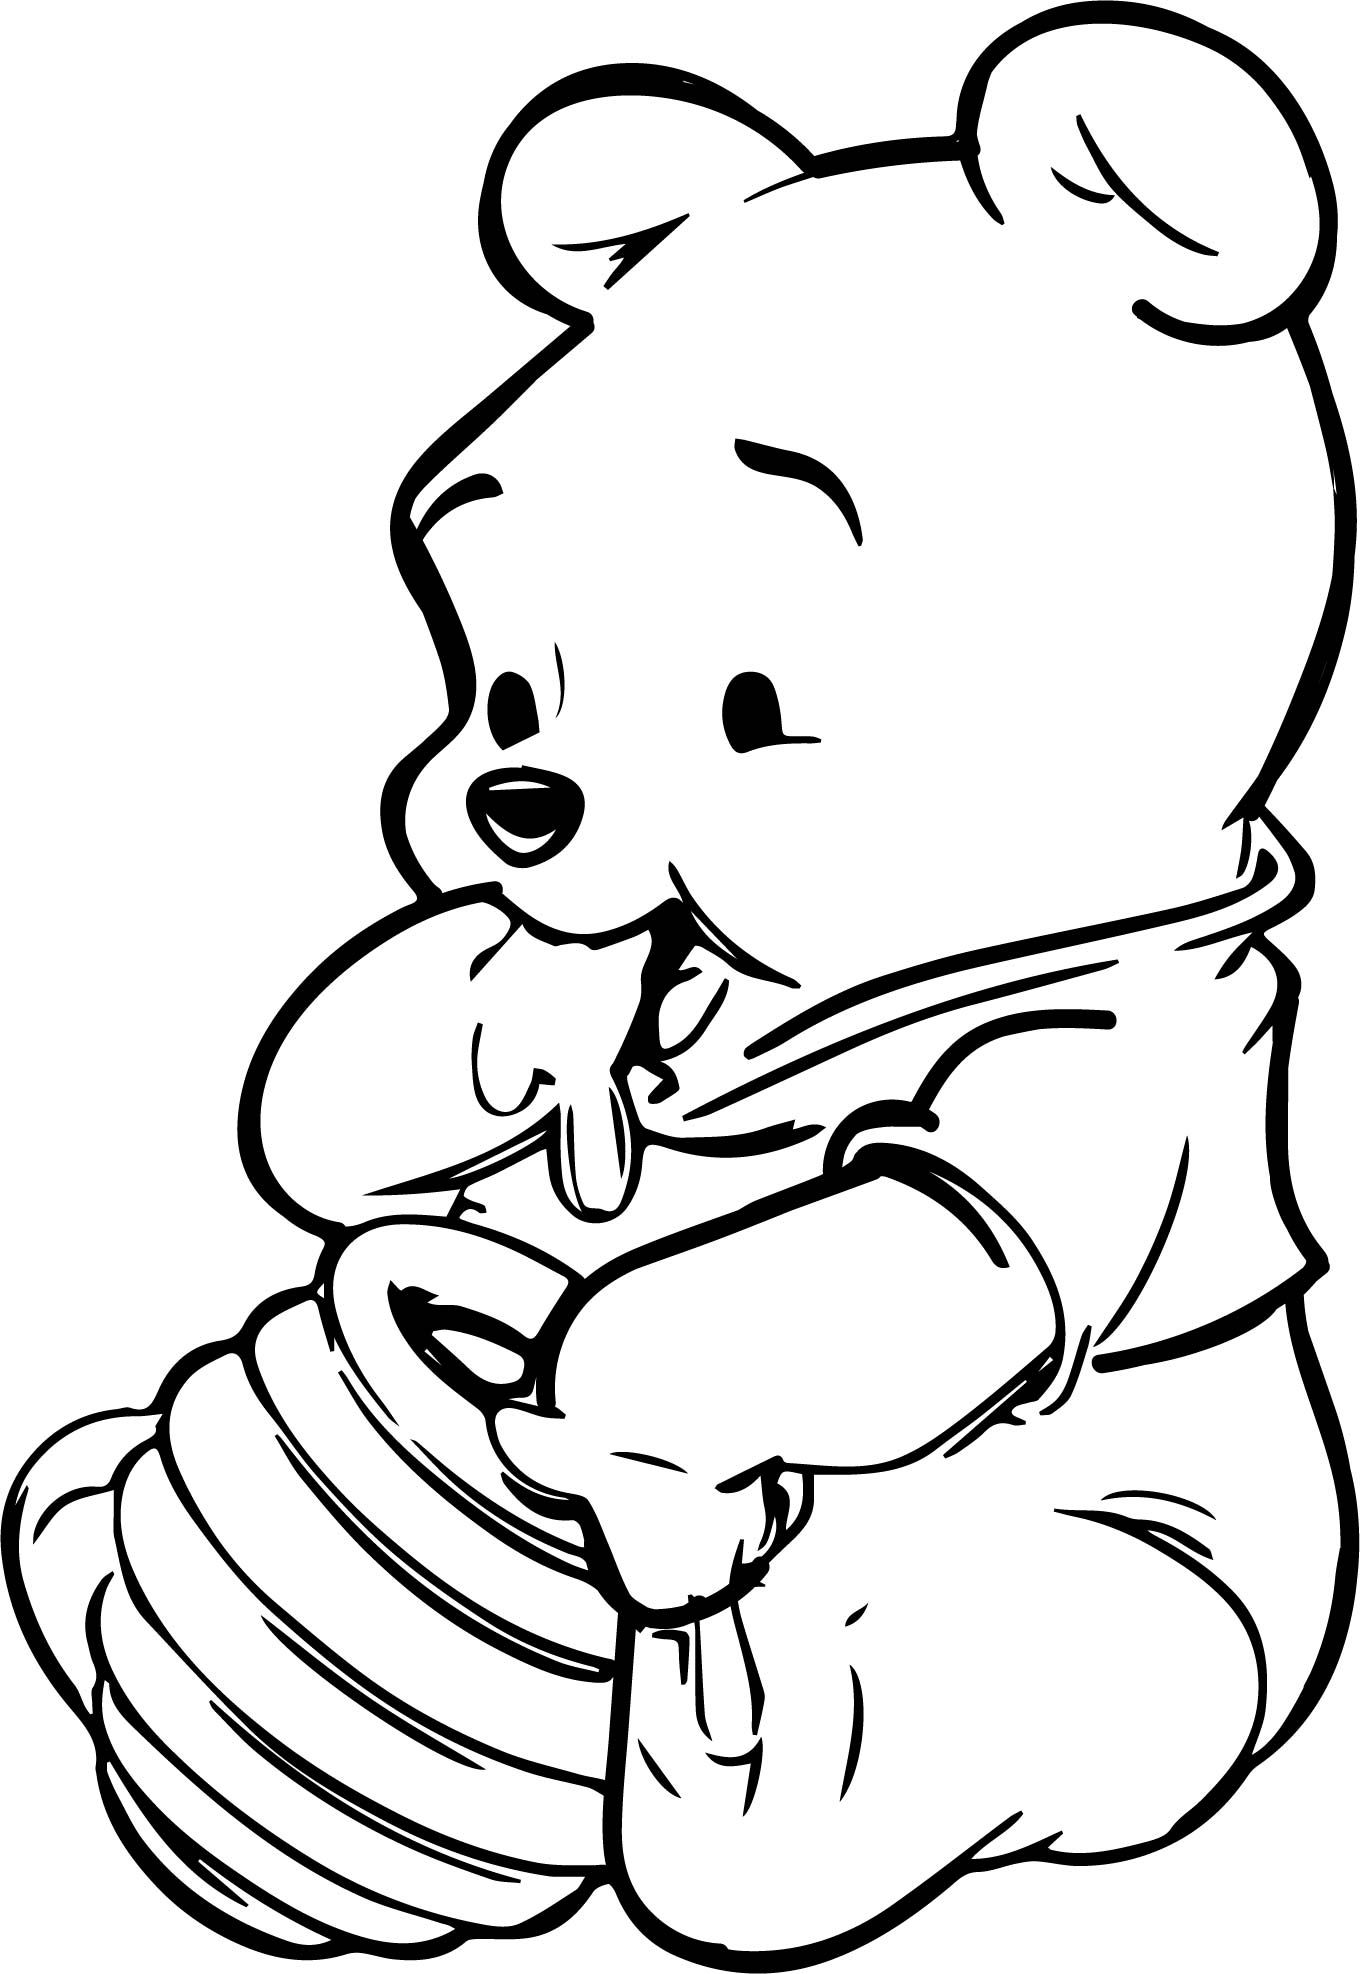 Winnie The Pooh Coloring Pages Winnie The Pooh Drawing Whinnie